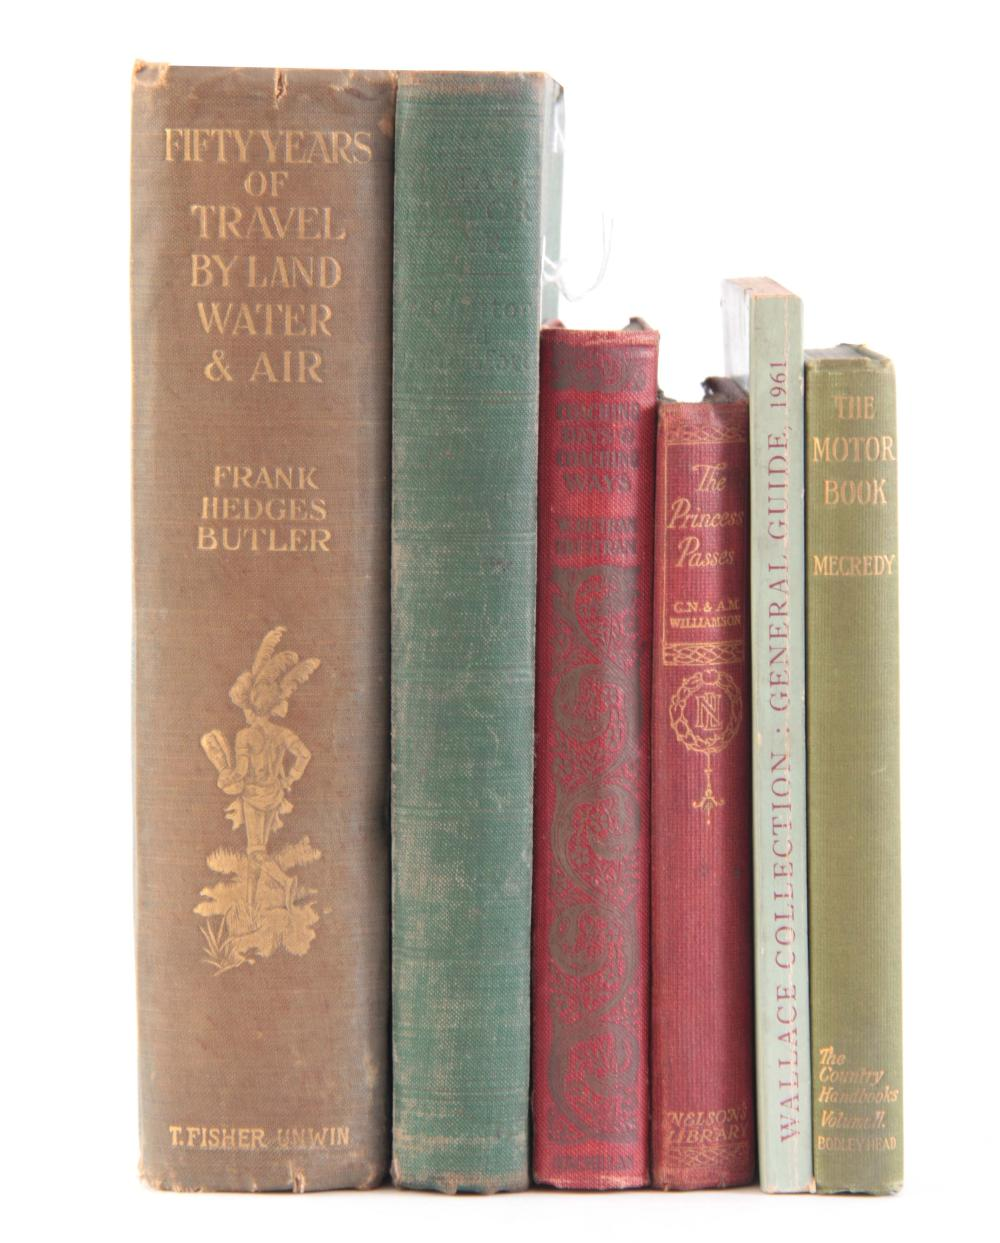 A COLLECTION OF 6 BOOKS including, THE MOTOR BOOK